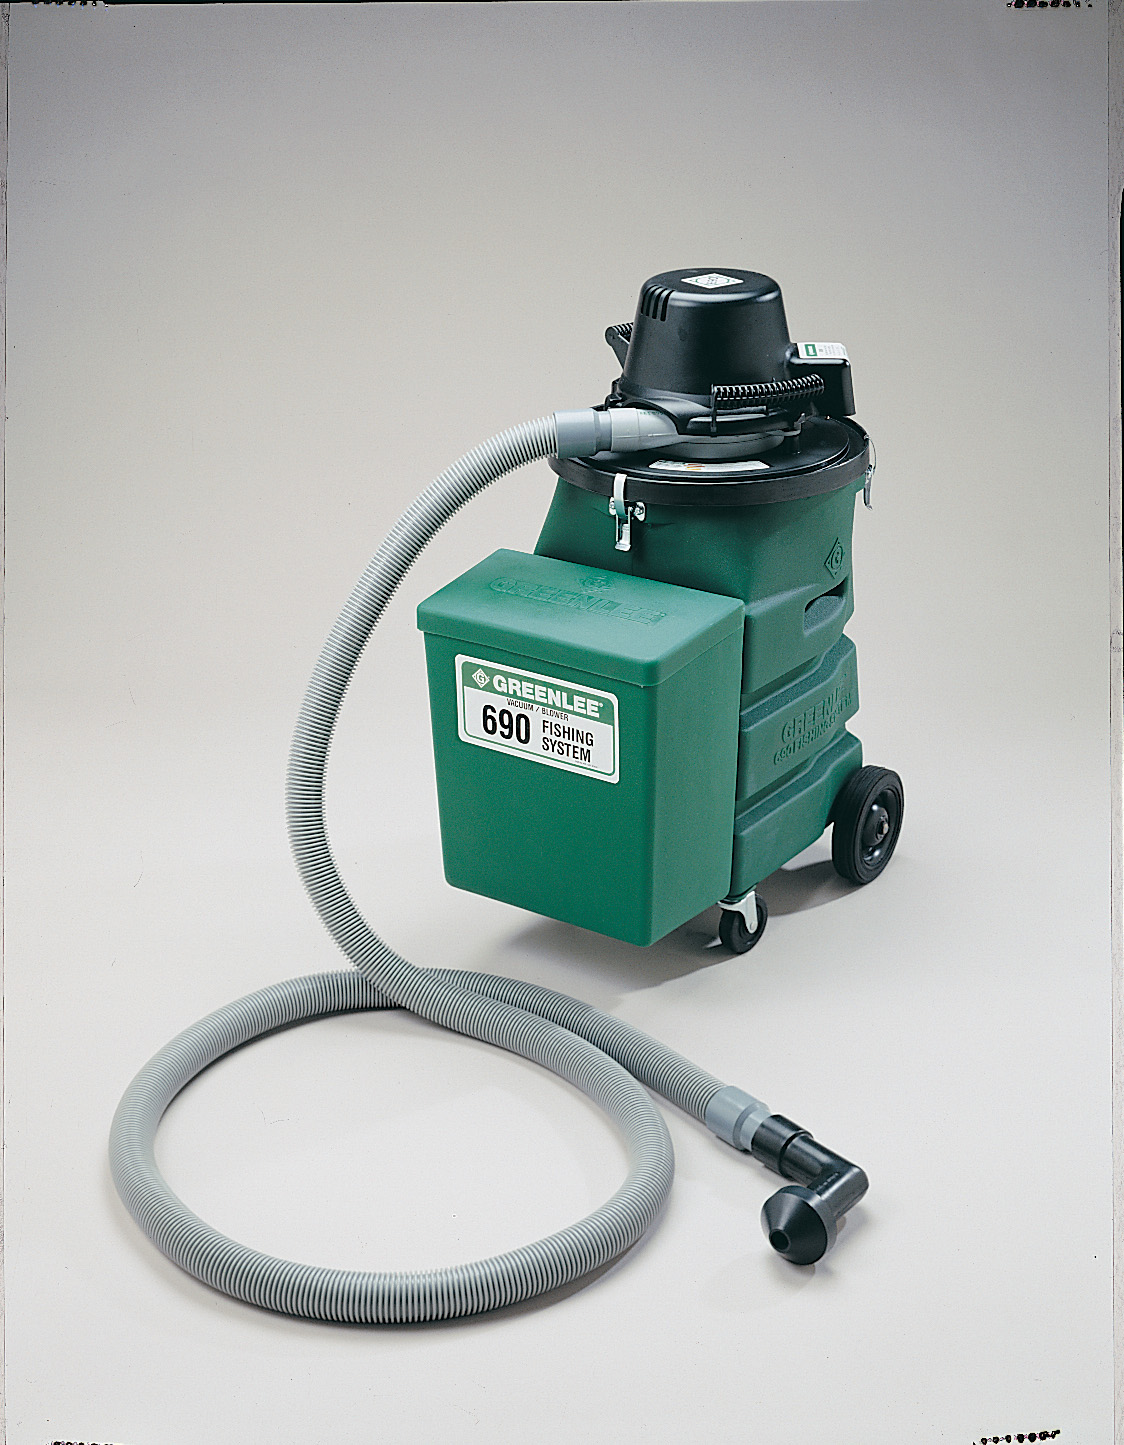 Vacuum And Blower Systems : Electrical tools accessories power fishing systems